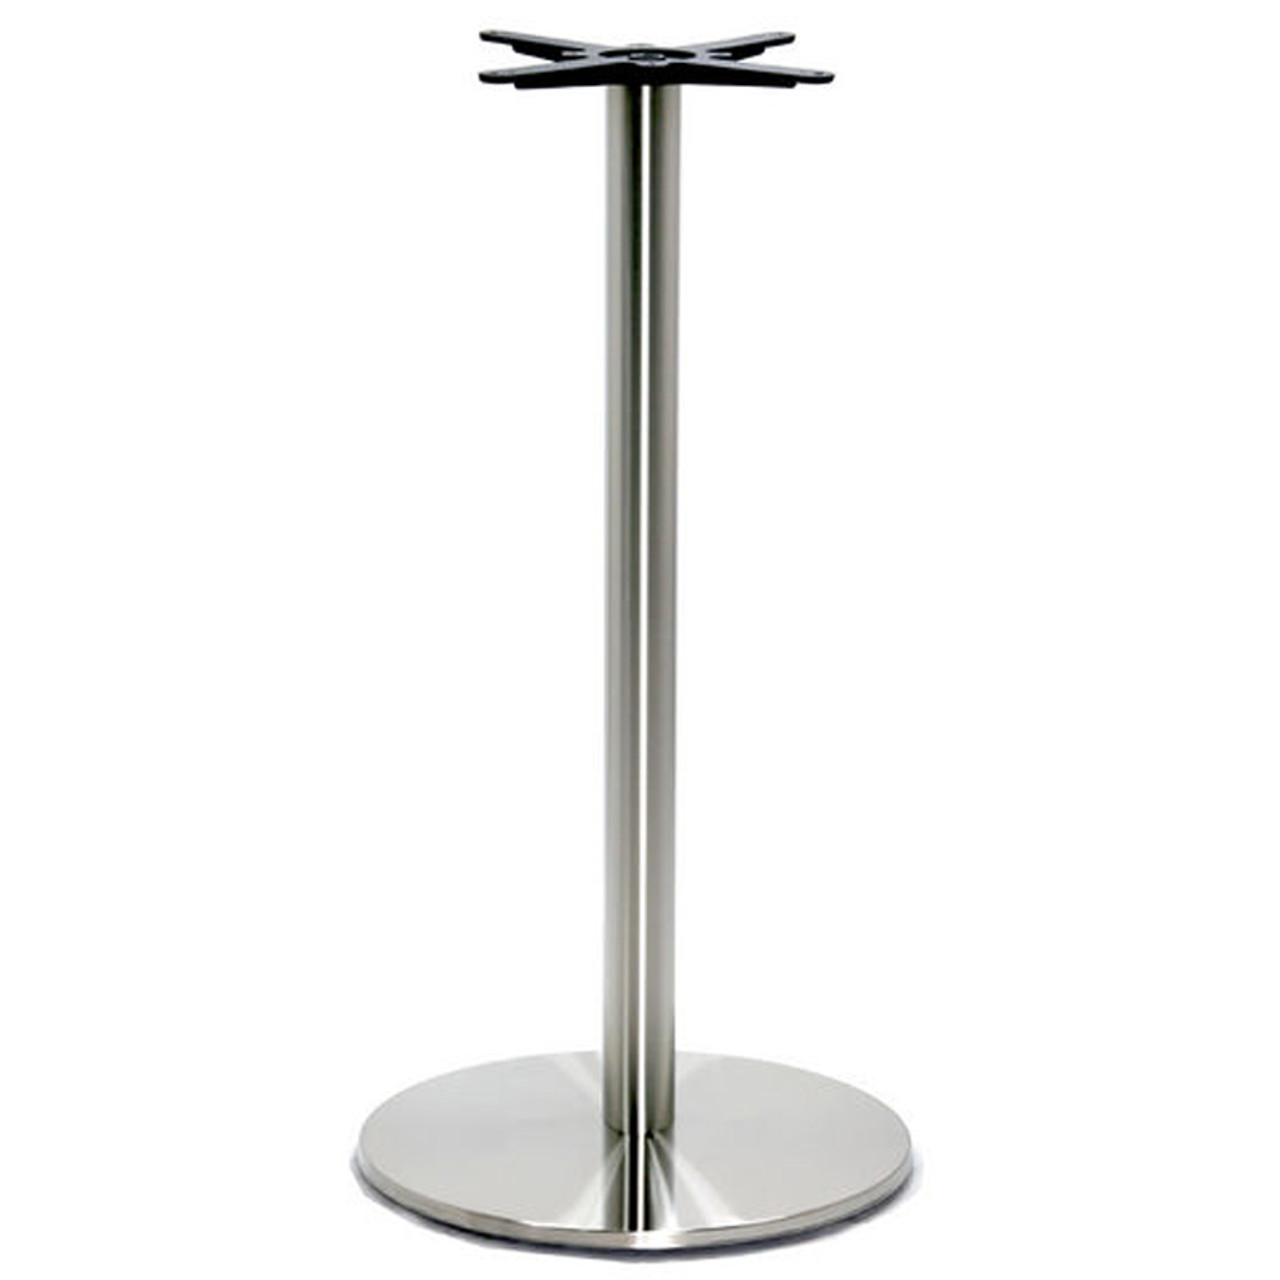 Picture of: Round Pedestal Table Base Brushed Stainless Steel 40 3 8 Bar Height 17 Round Base 3 Diameter Steel Column Single Replacementtablelegs Com